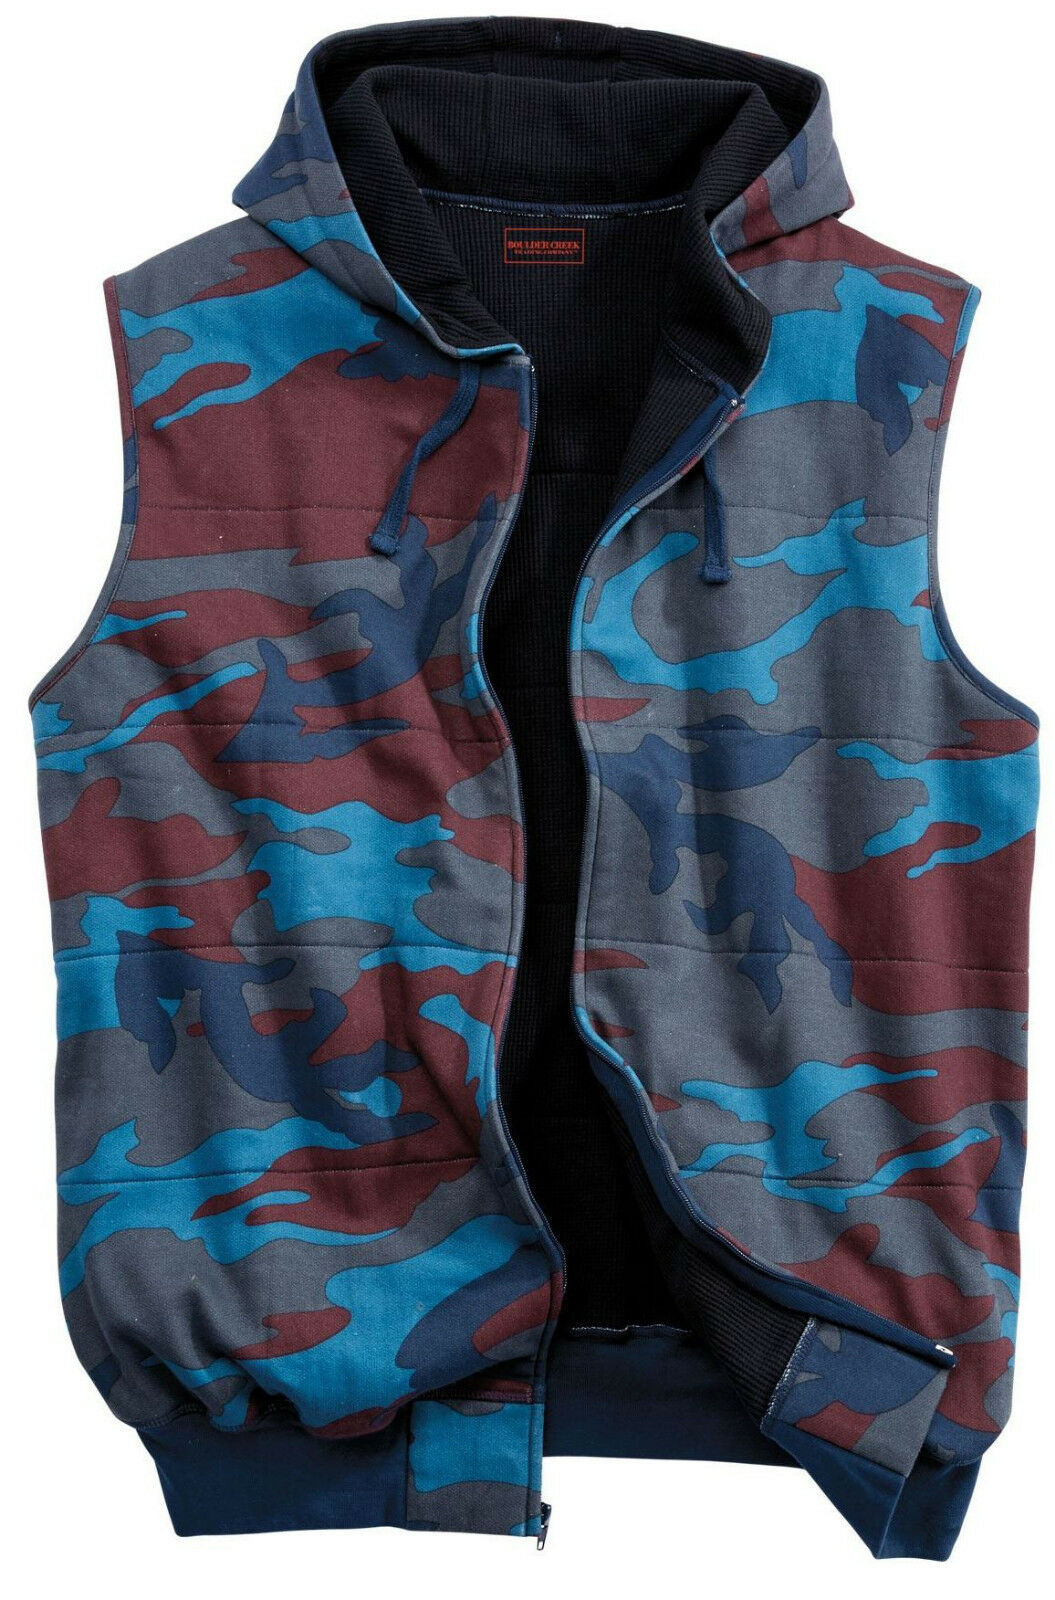 BOULDER CREEK KING SIZE HOODED THERMAL LINED FLEECE CAMO VEST MENS 3X TALL 3XLT